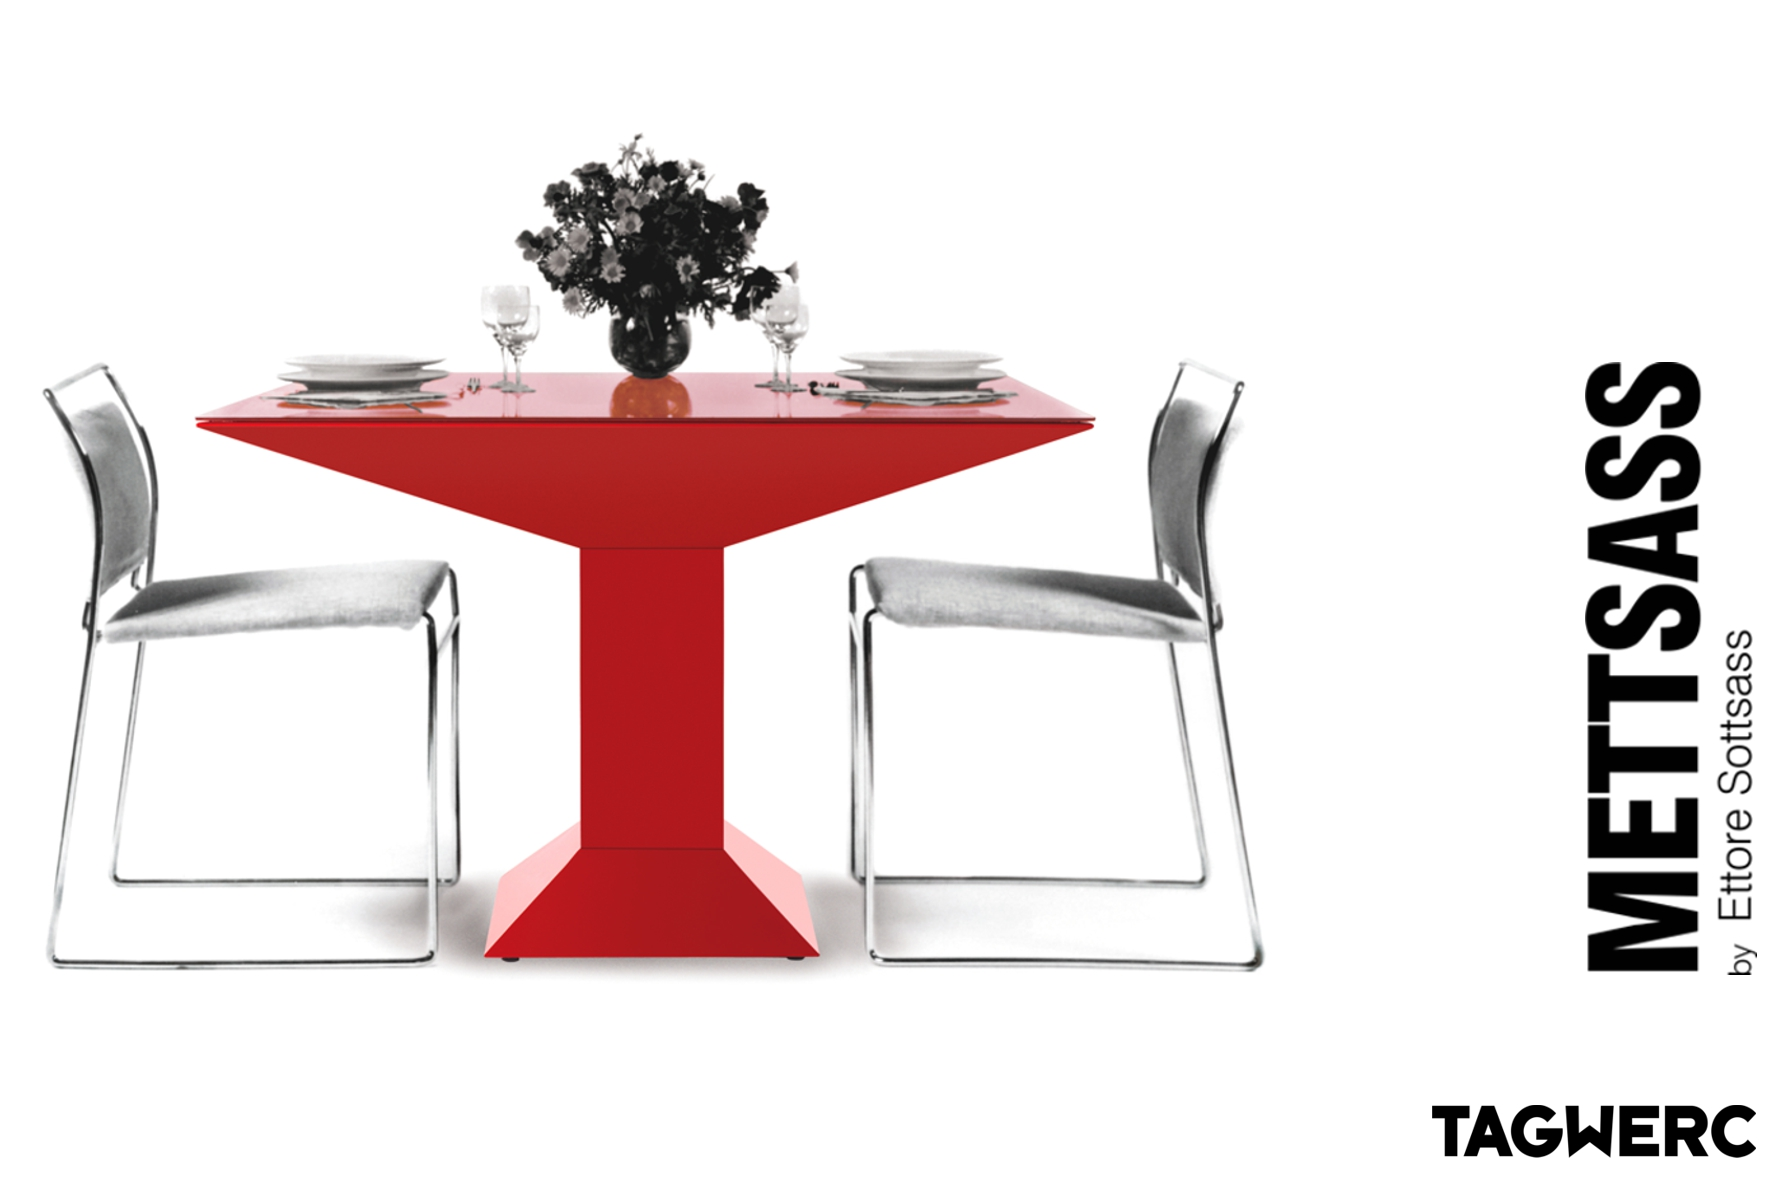 mettsass-table_red__bd-barcelona_ettore-sottsass-1972___tagwerc_mob